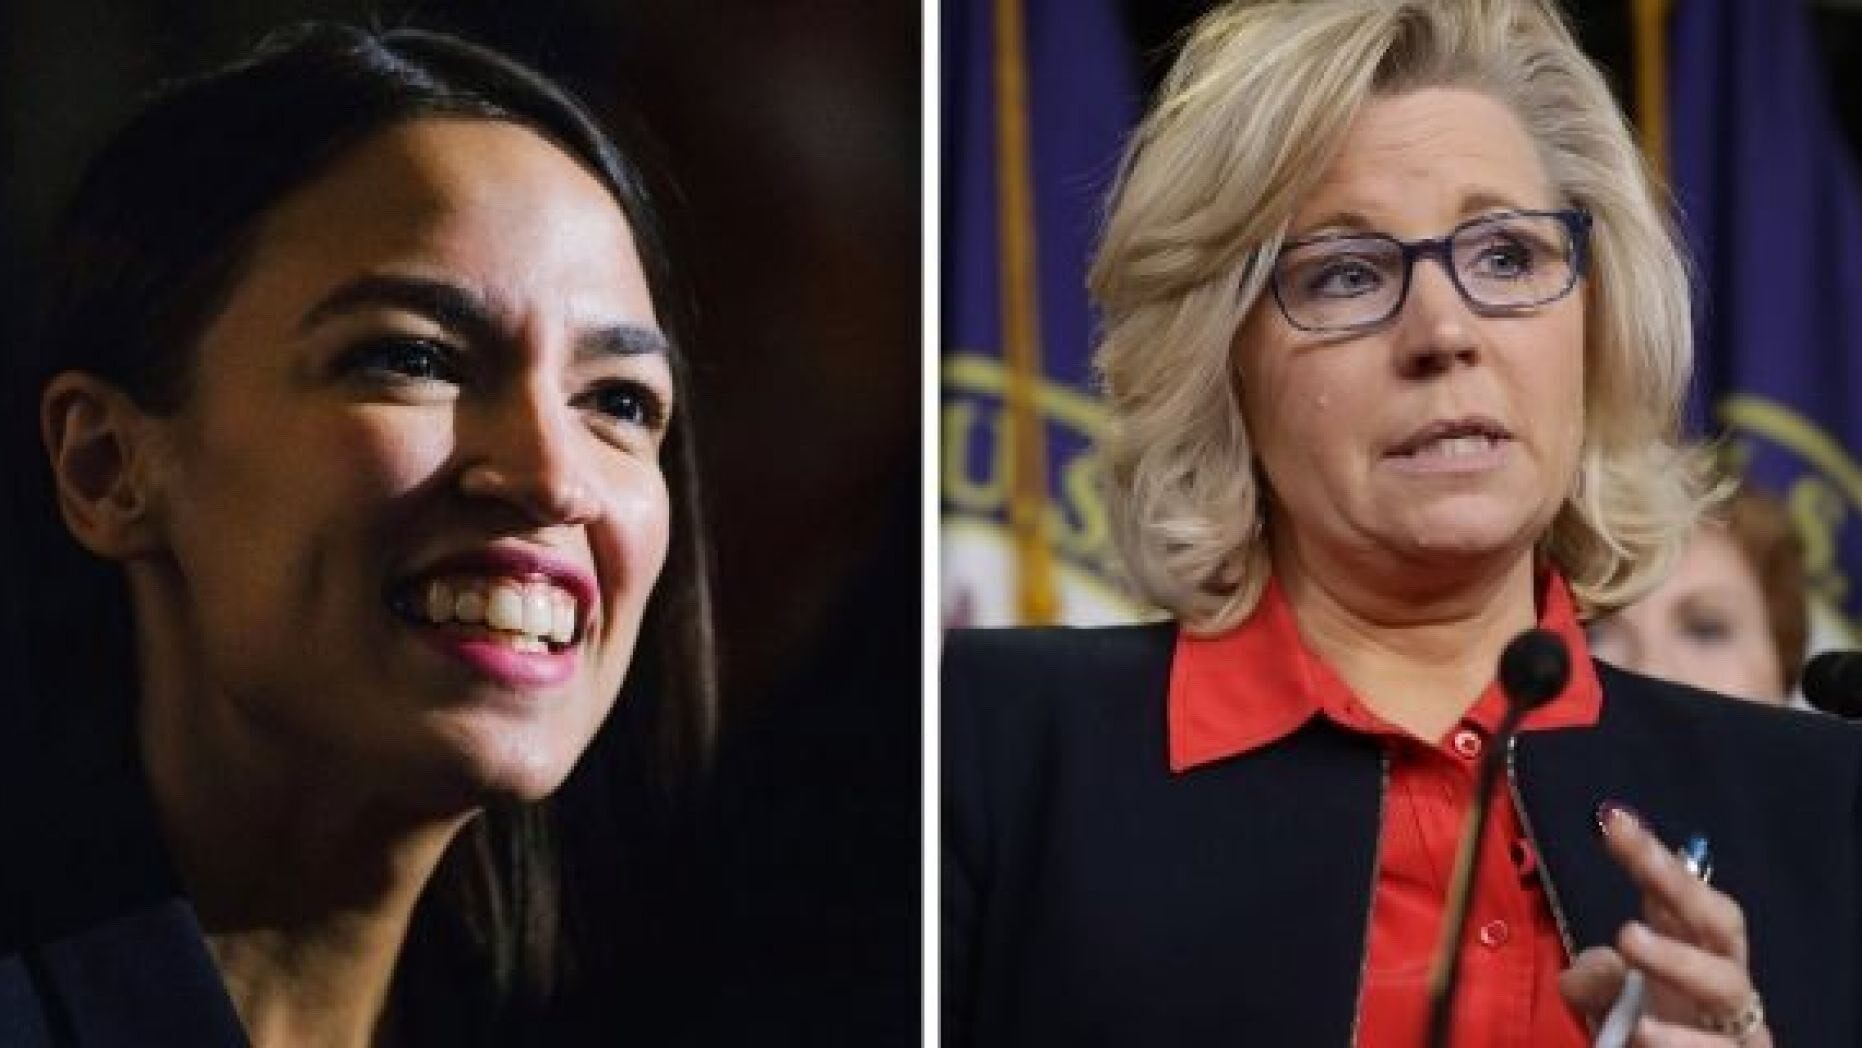 Rep. Liz Cheney Fires Back At AOC: She And Her Party Constantly Try To Divide People Using Race And Gender